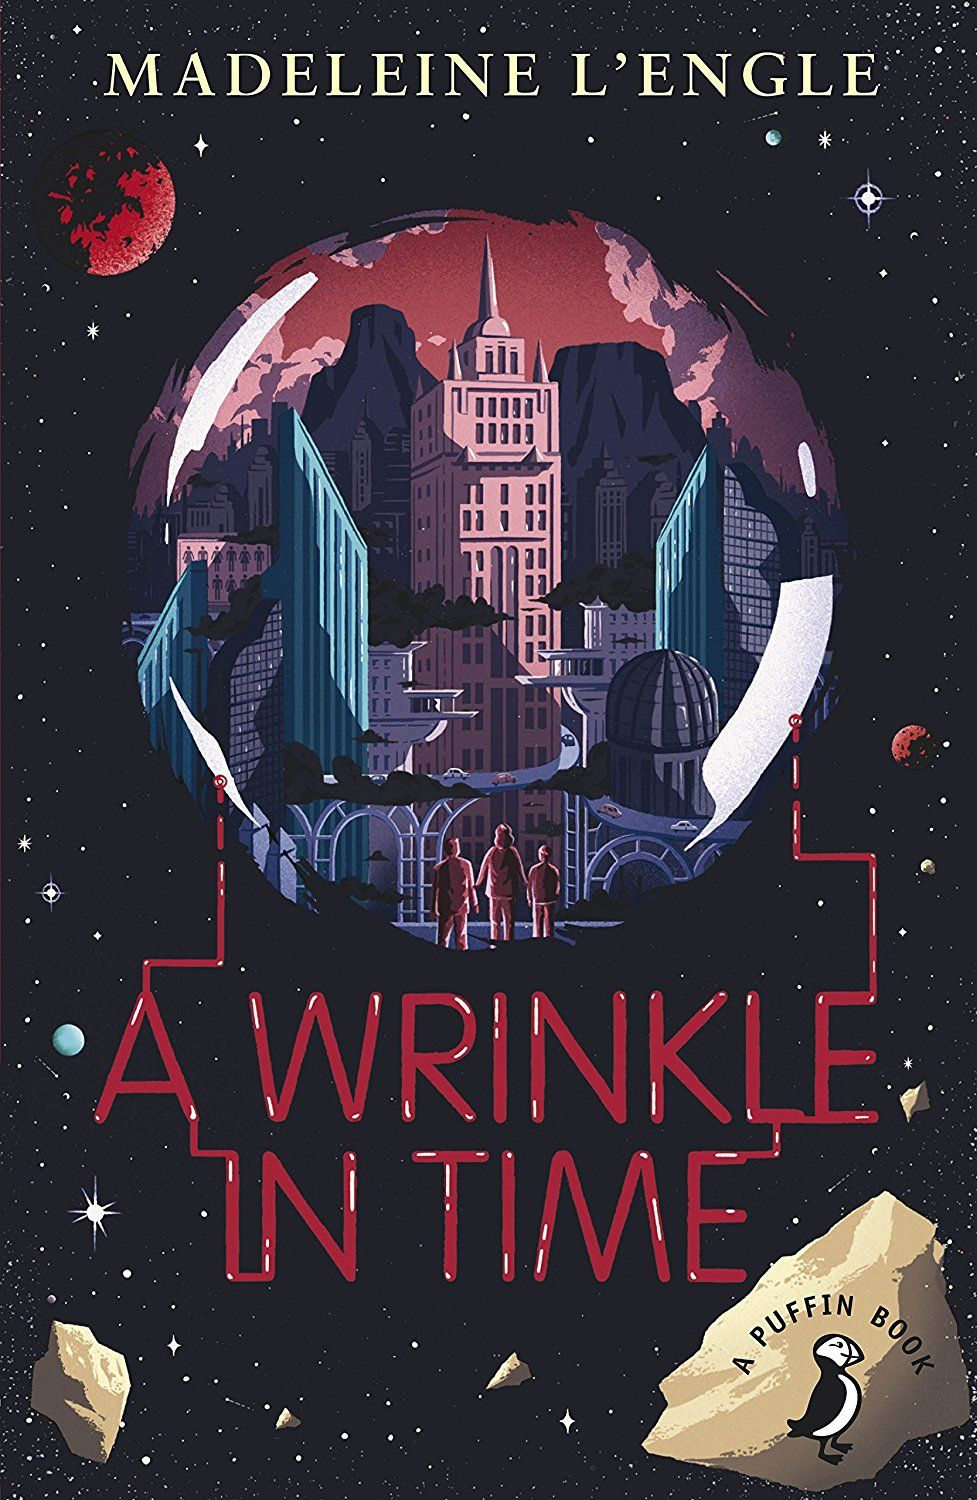 the weirdest of things in a wrinkle in time by madeleine lengle Author:madeleine l'engle format: mobi, epub tags: children: grades 4-6, parents, nonsexist children's literature, missing persons, reading, brothers and sisters, juvenile science fiction, science fiction, ages 9-12 fiction, social issues - friendship, social issues, magic, juvenile fiction, space.